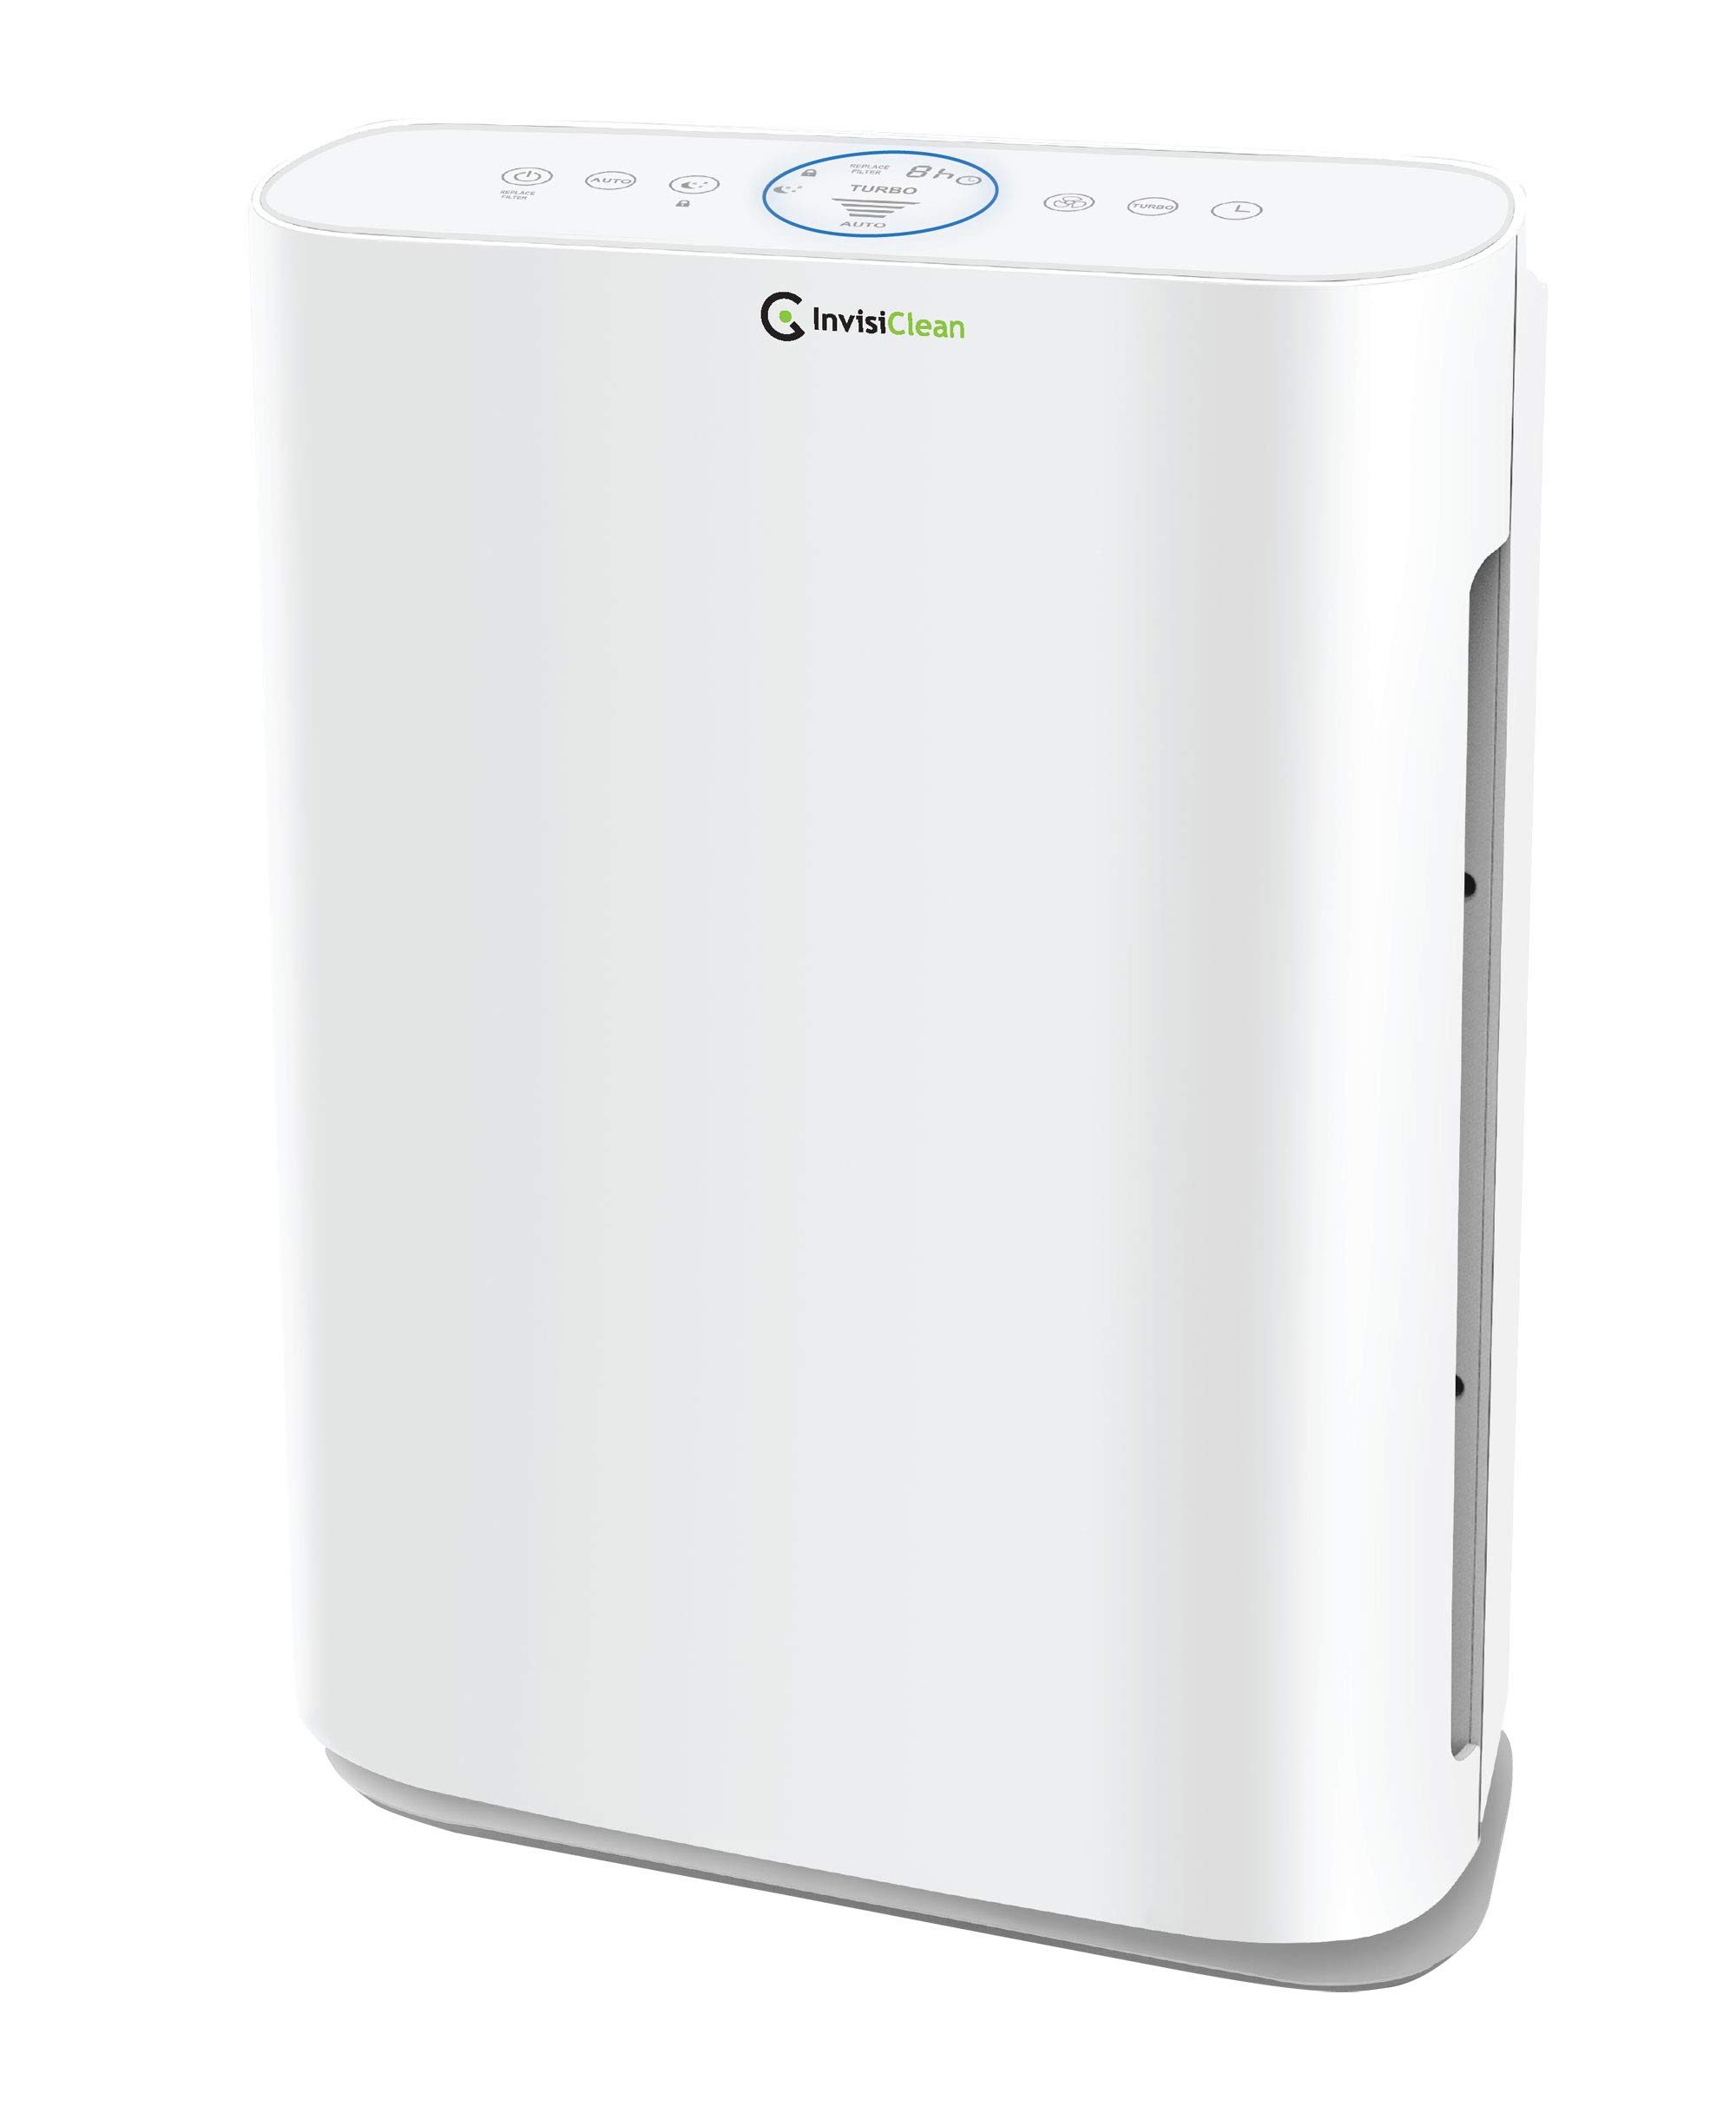 InvisiClean Sensa Air Purifier for Home – Smart Air Quality Sensor for Bedrooms, Allergies and Pets, Large Rooms, Smoke, Dust, Mold, Allergens, Odors, True HEPA, Carbon, Ultra Quiet, No Ozone IC-5120